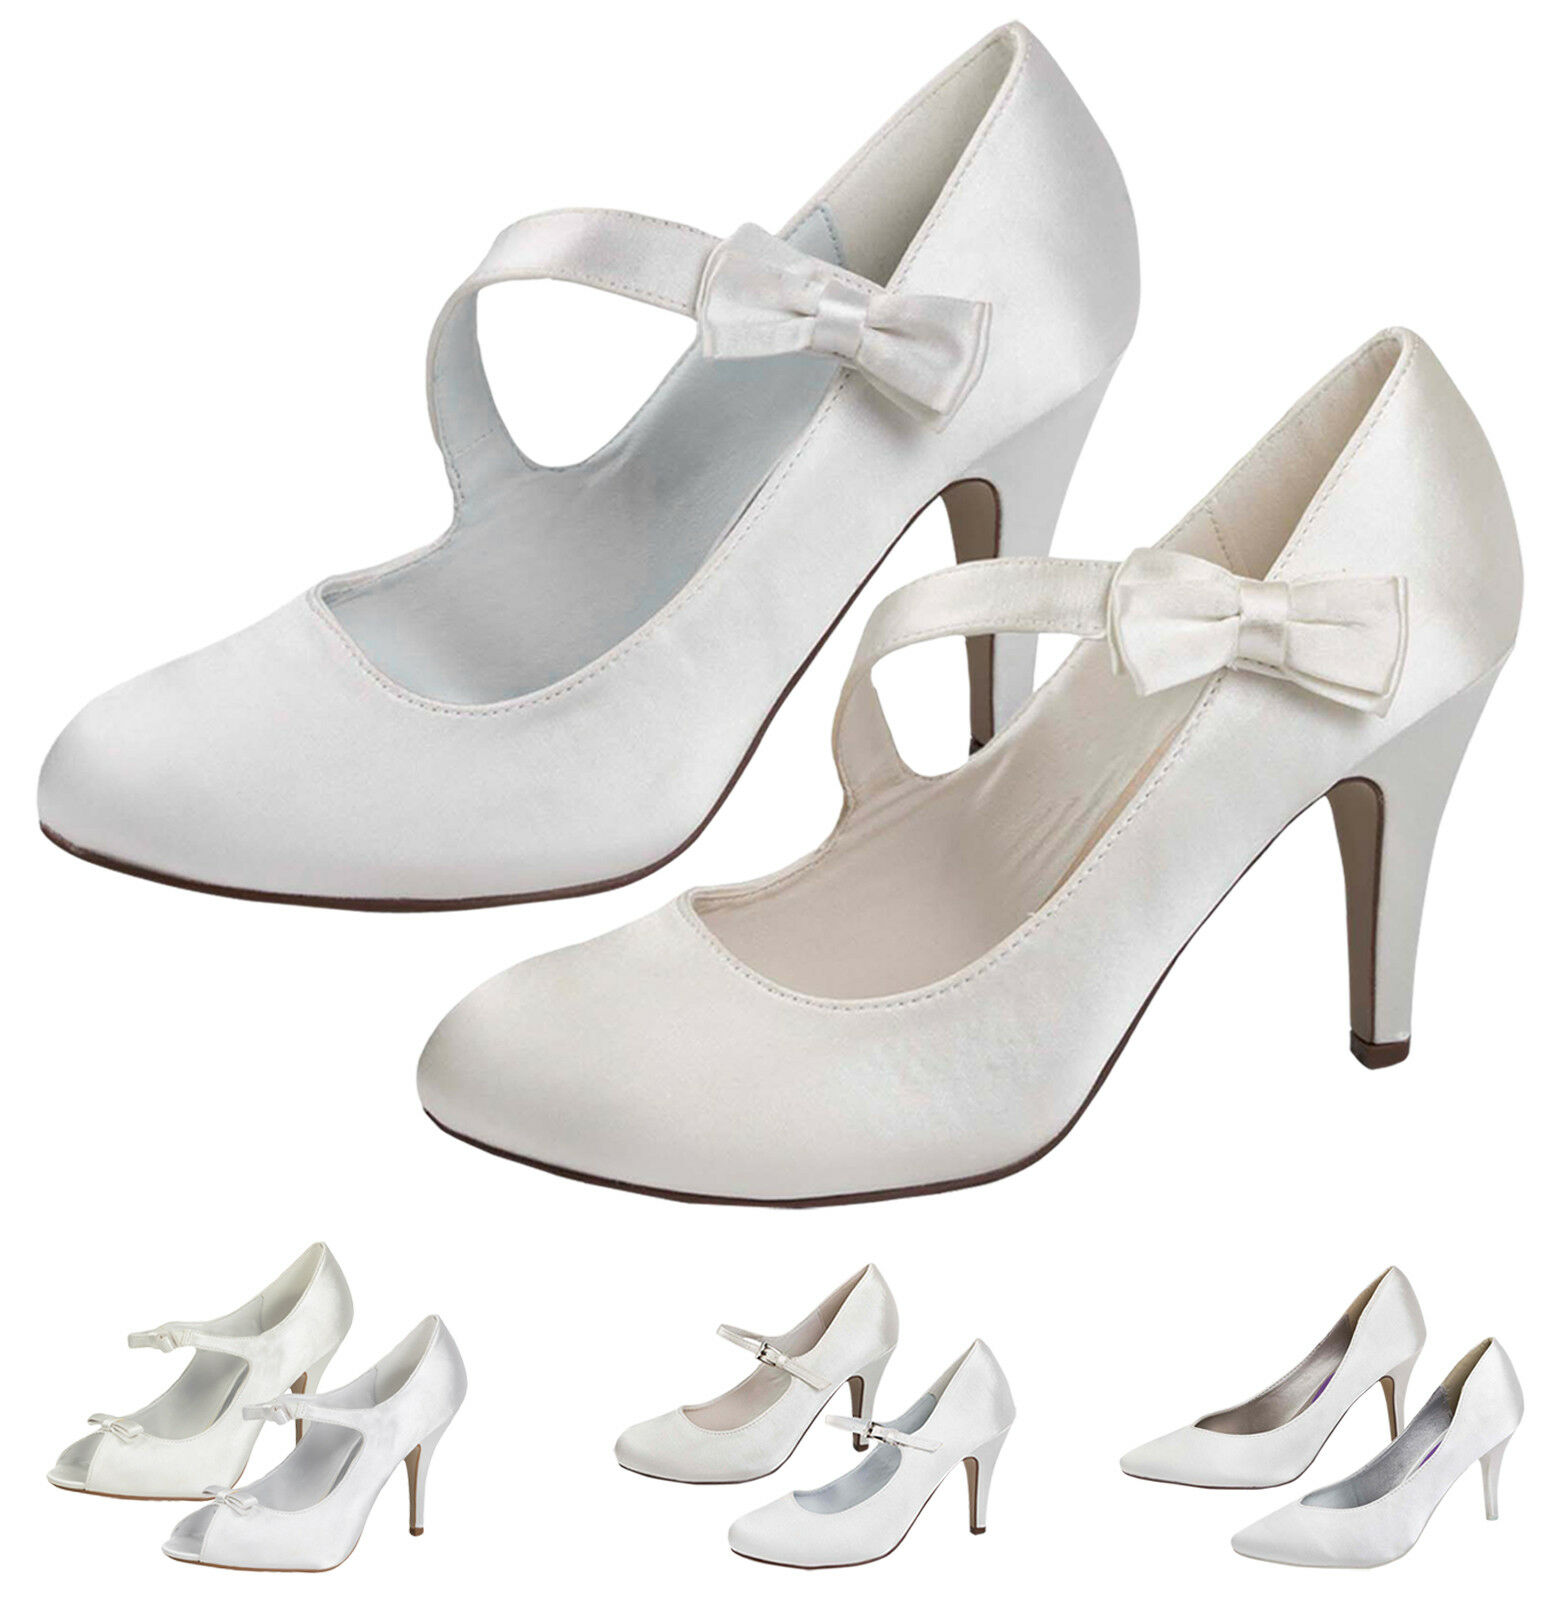 Womens Wedding Shoes Satin Bridal High Heels Classic Court Party Pumps Ladies